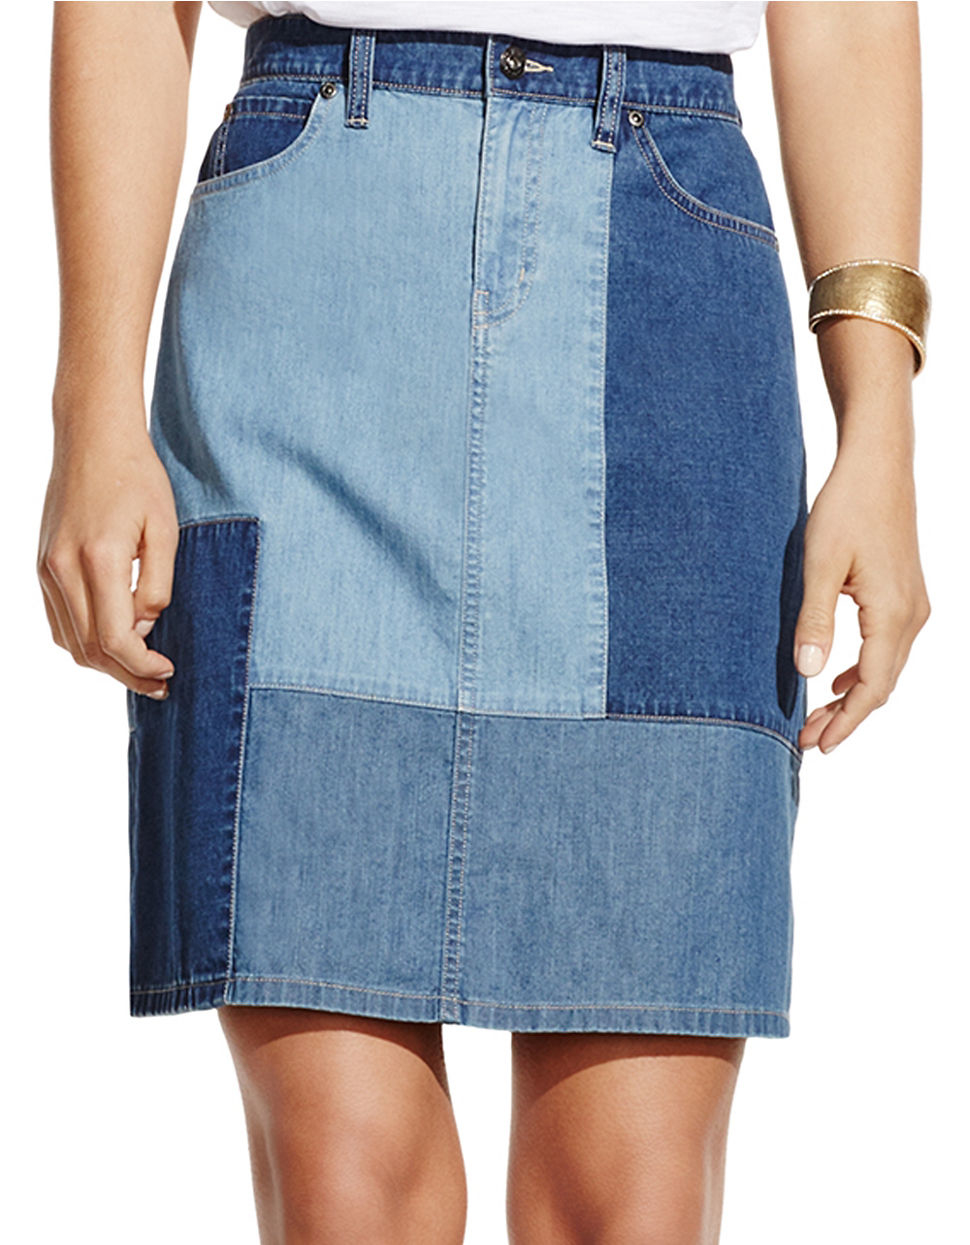 Two by vince camuto Colorblocked Denim Skirt | Lyst